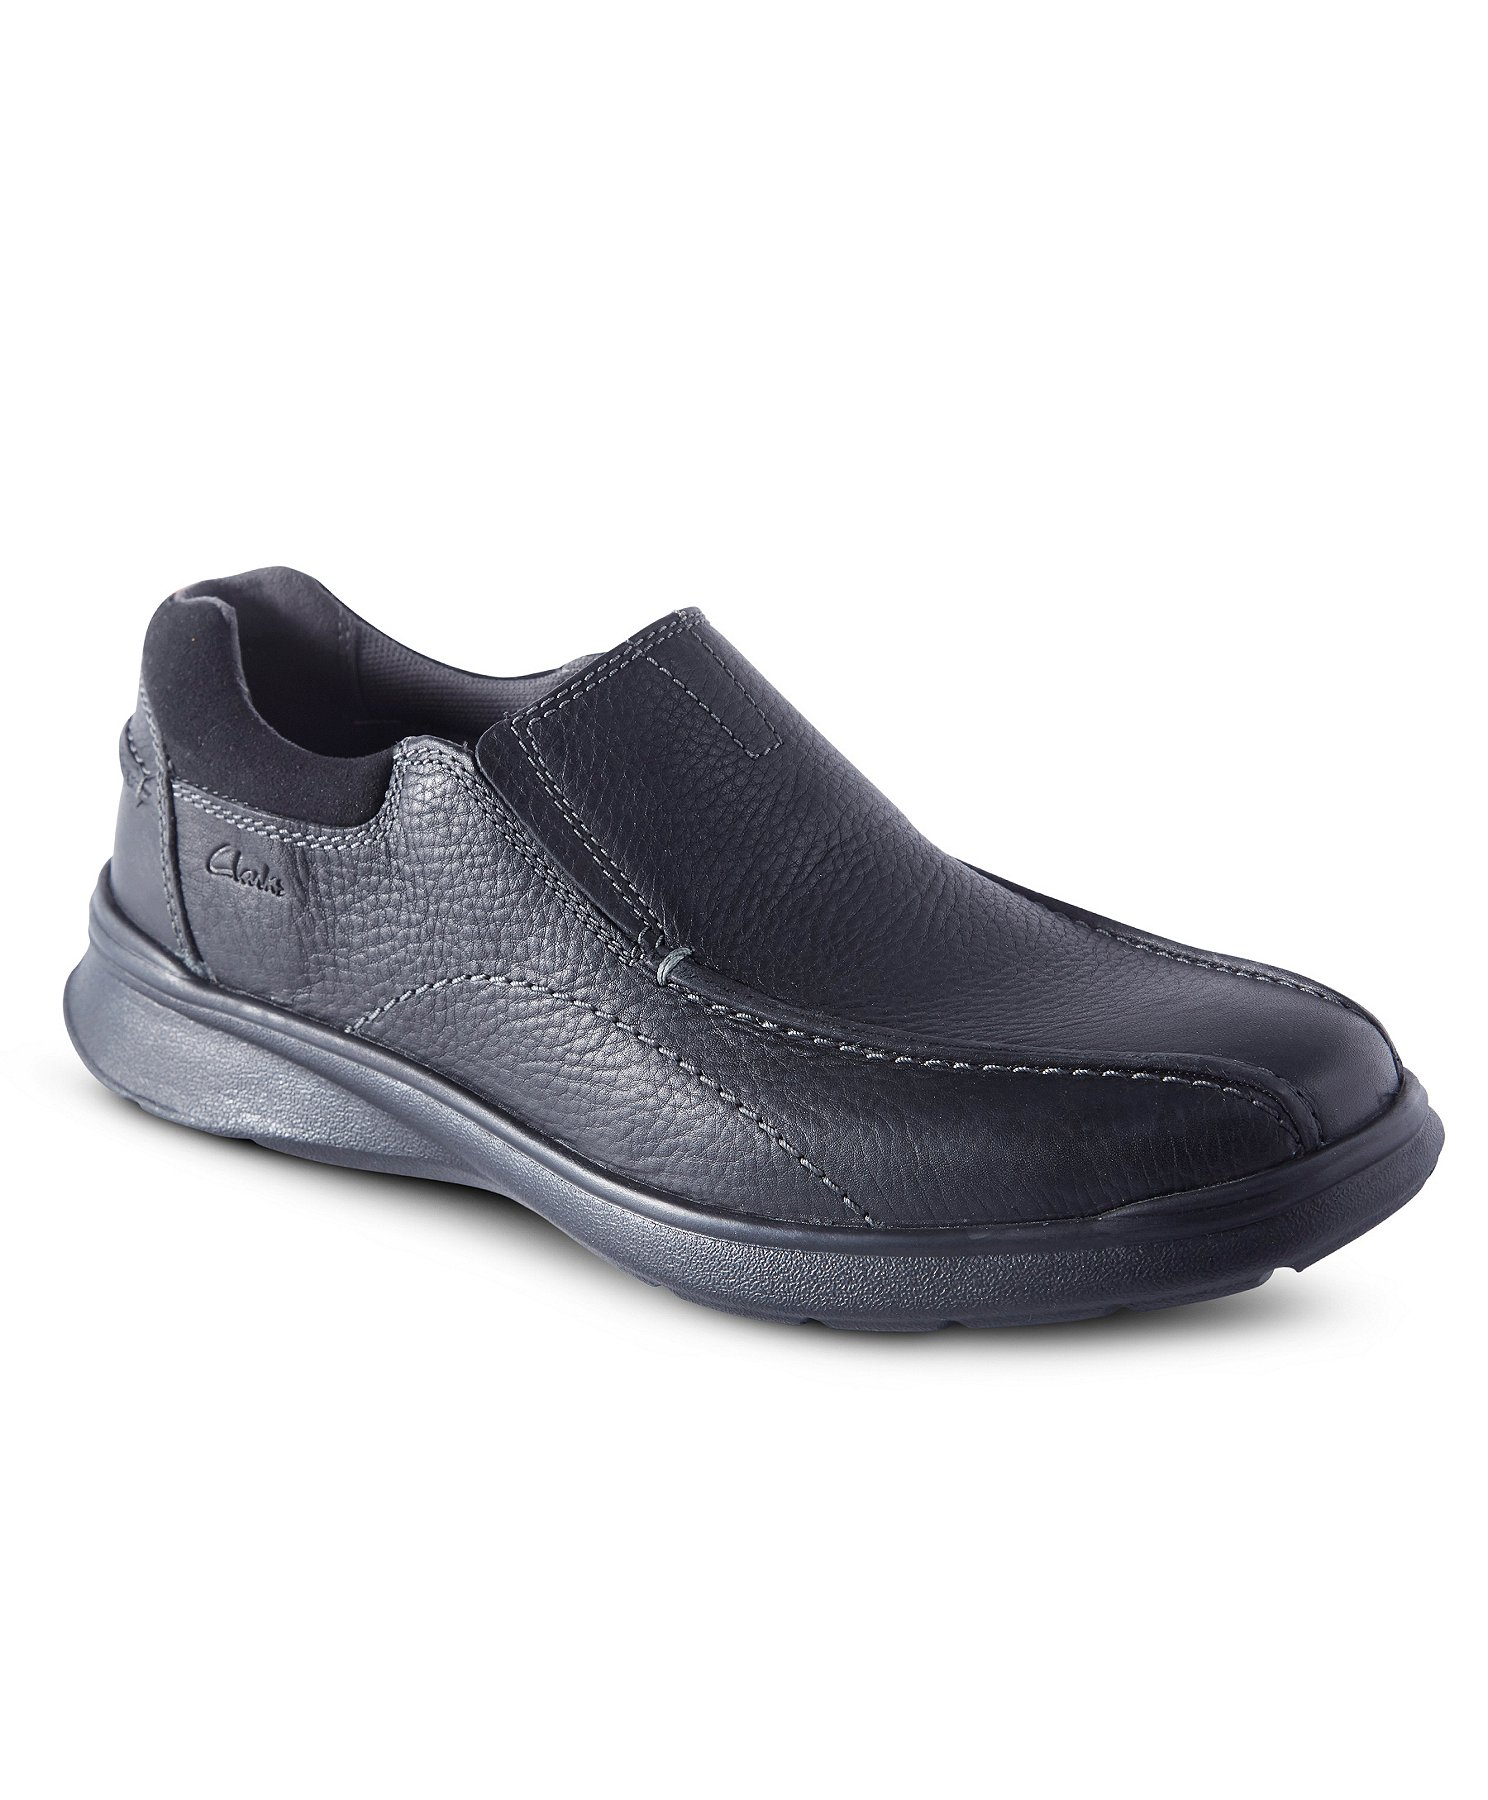 d8b06052 Men's Cotrell Step Slip-On Shoes